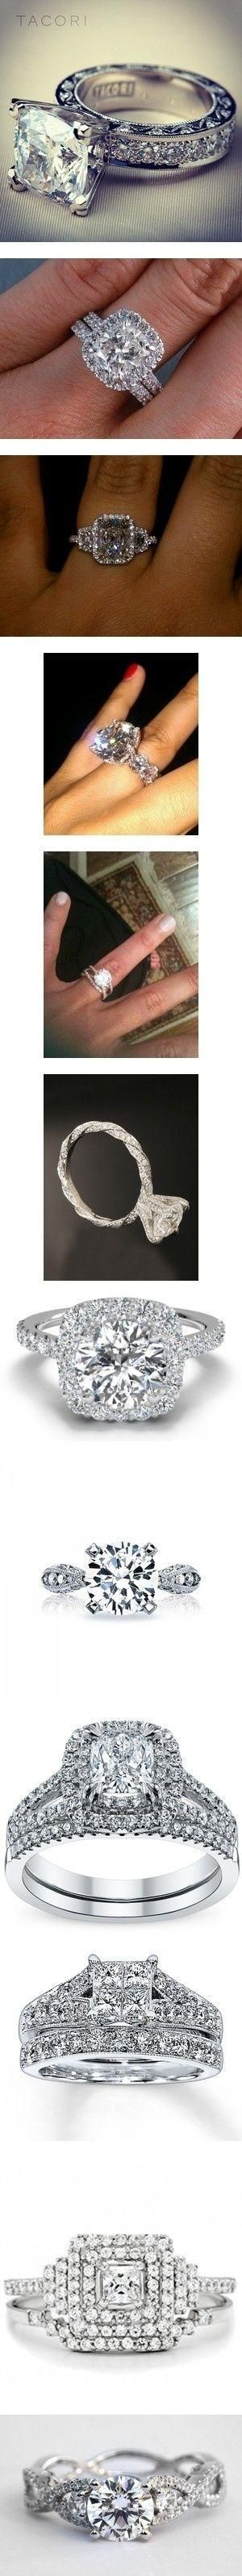 best pretty things images on pinterest chains jewerly and